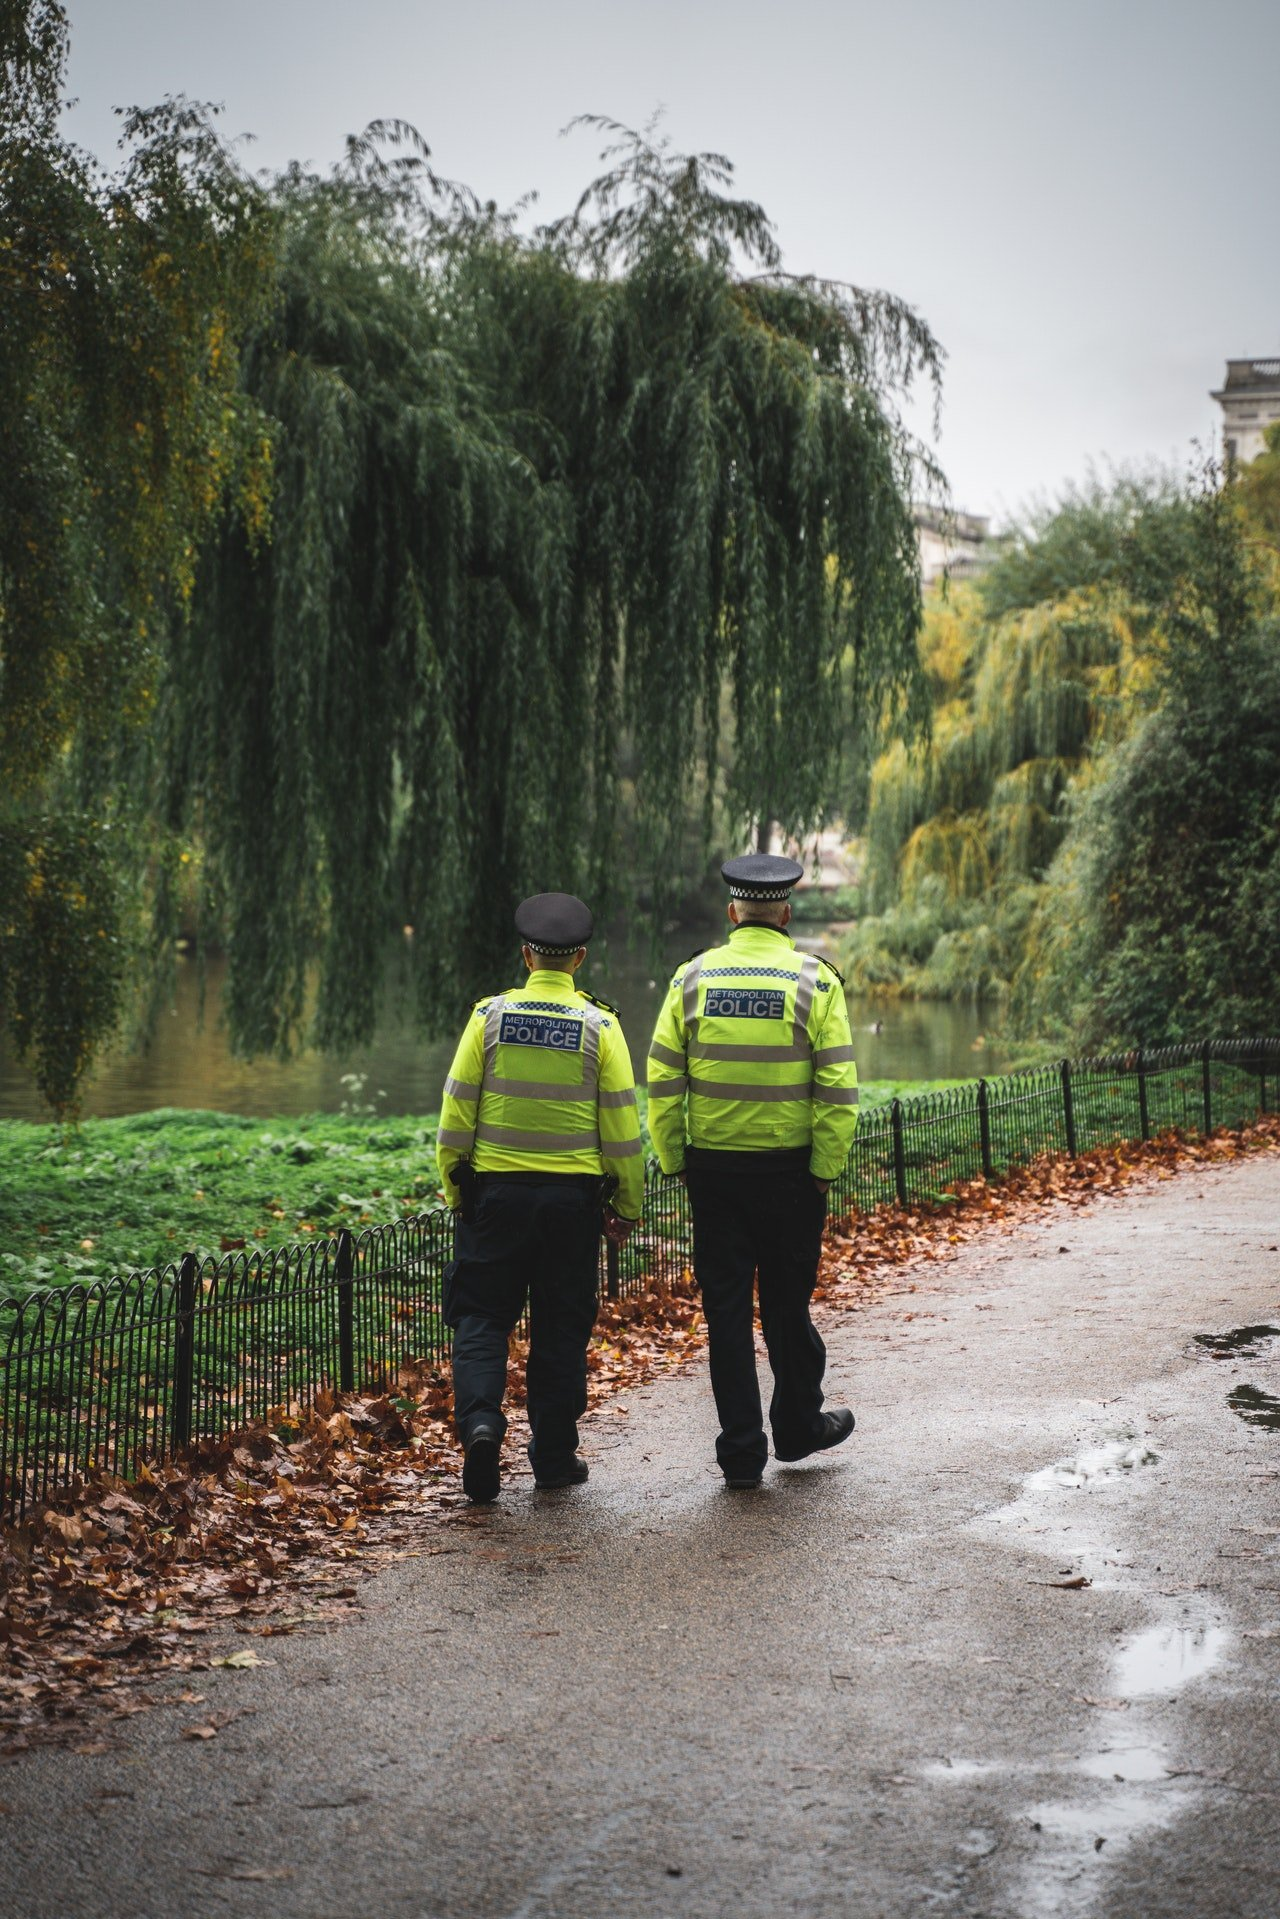 Two police officers walking down the road   Photo: Pexels